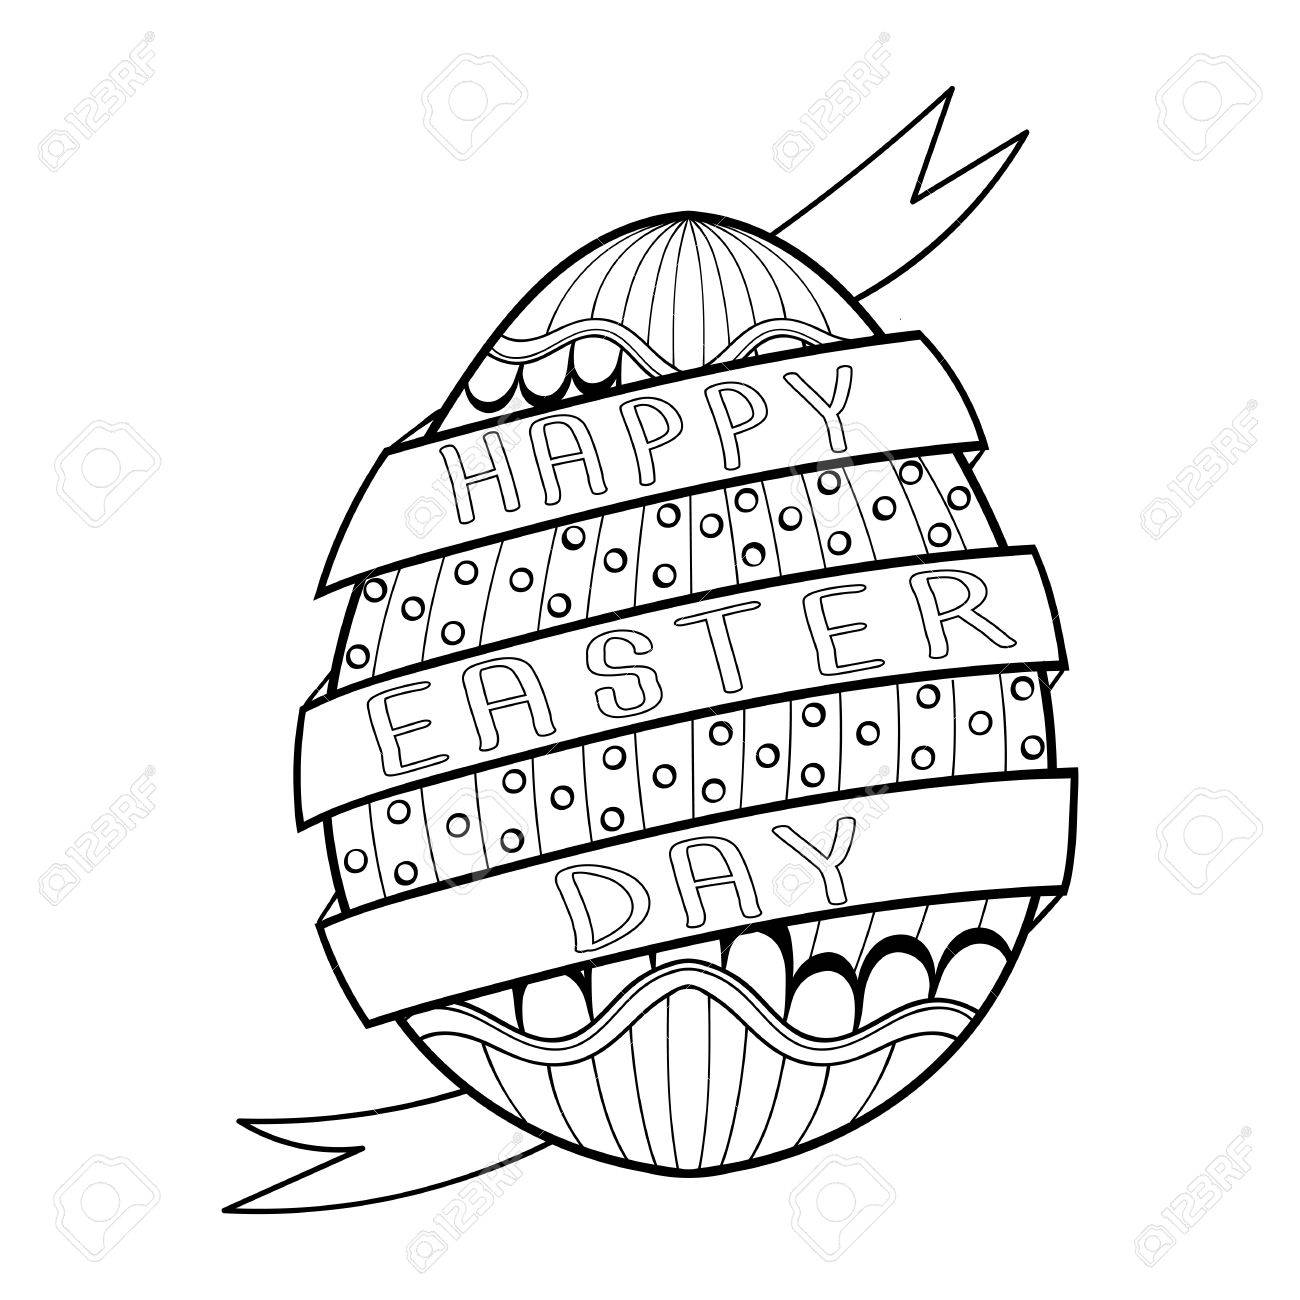 hand drawn artistic easter egg for coloring page in doodle